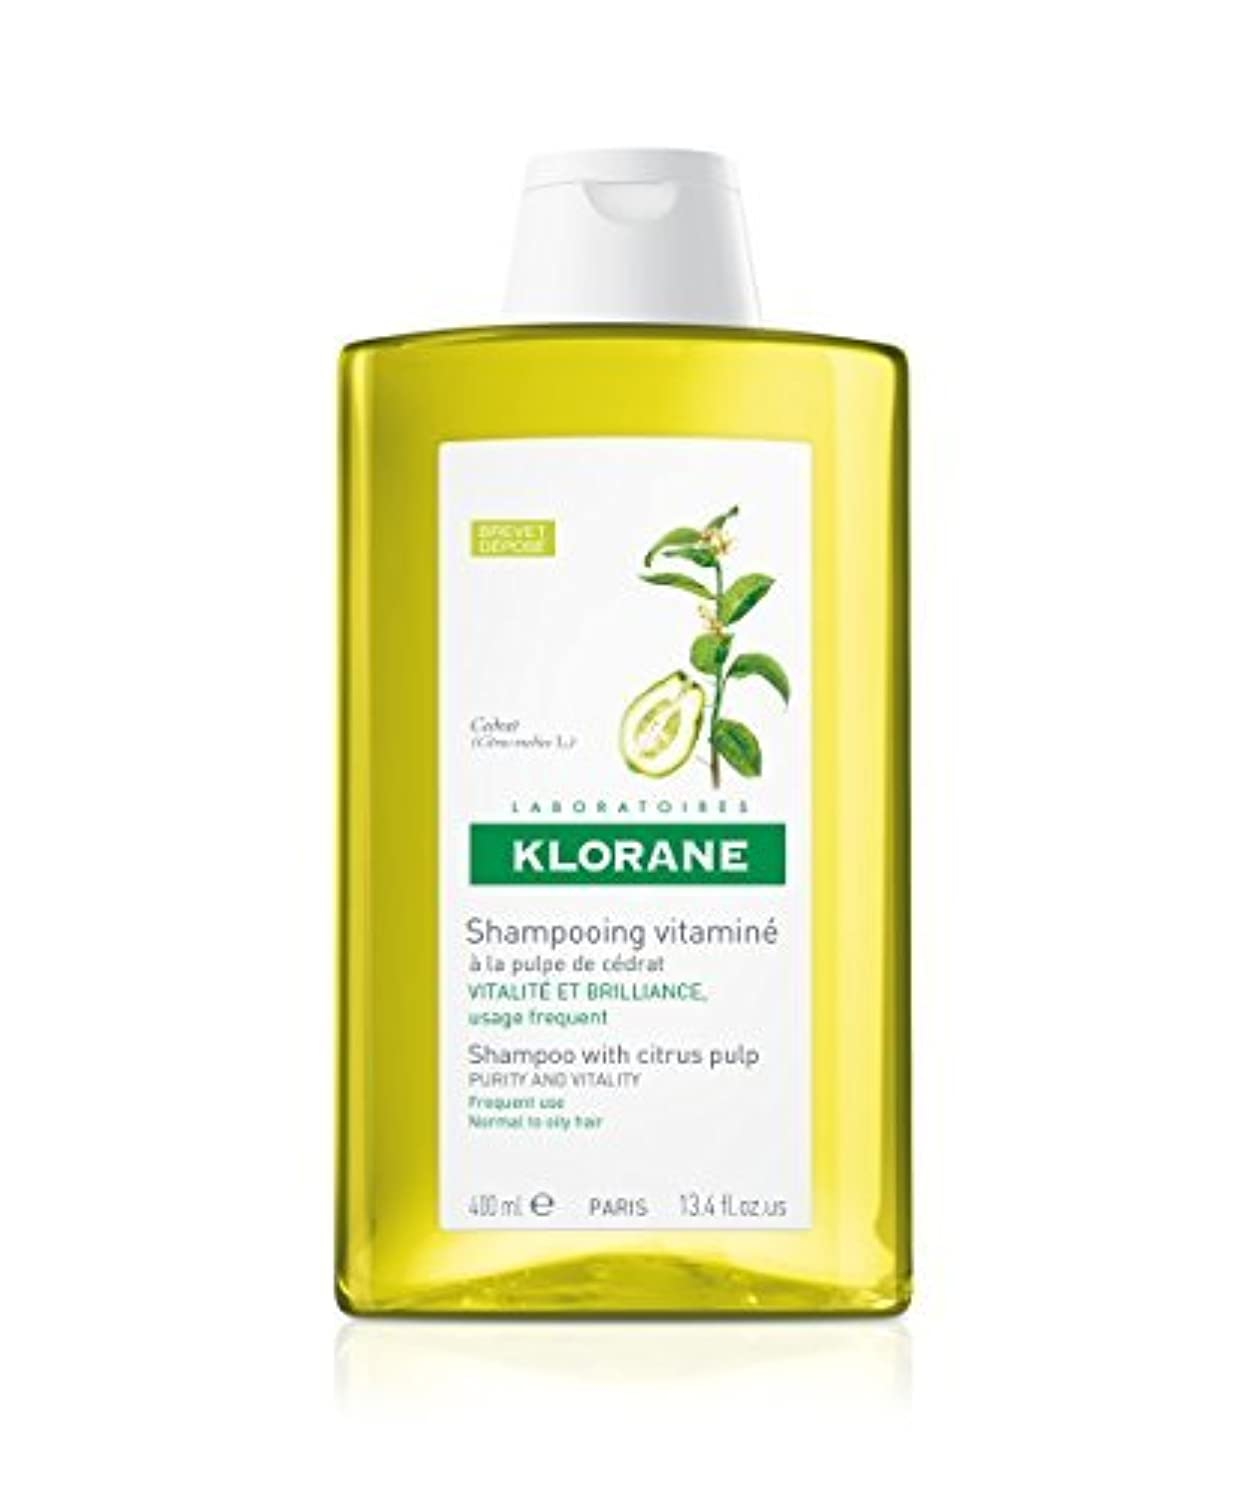 コーラス畝間濃度Shampoo with Citrus Pulp, 13.4 oz by Klorane [並行輸入品]